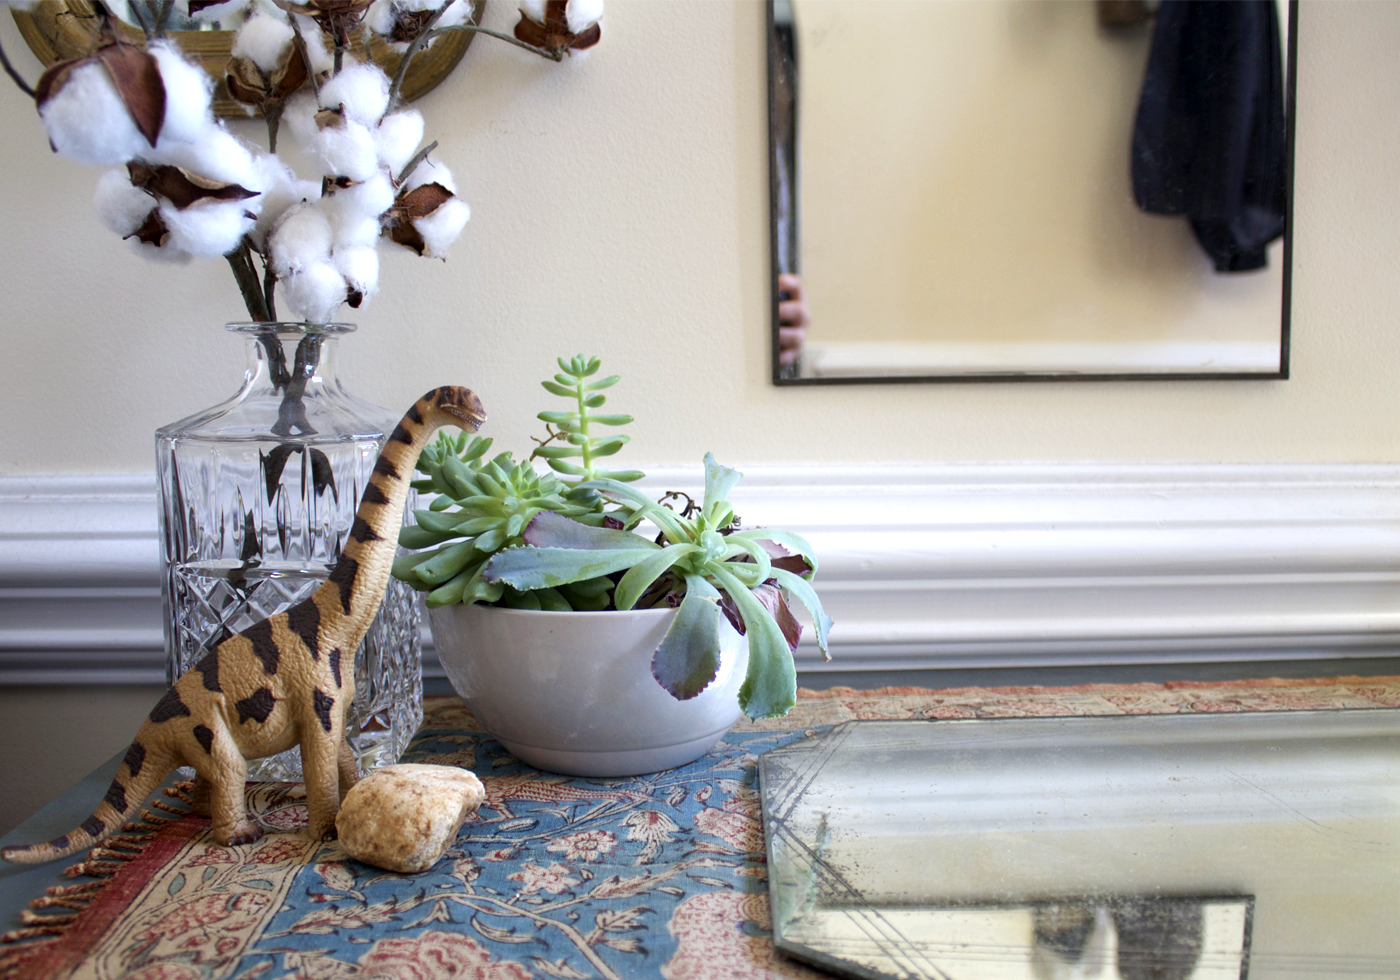 keep a few personal items out to make the space more inviting